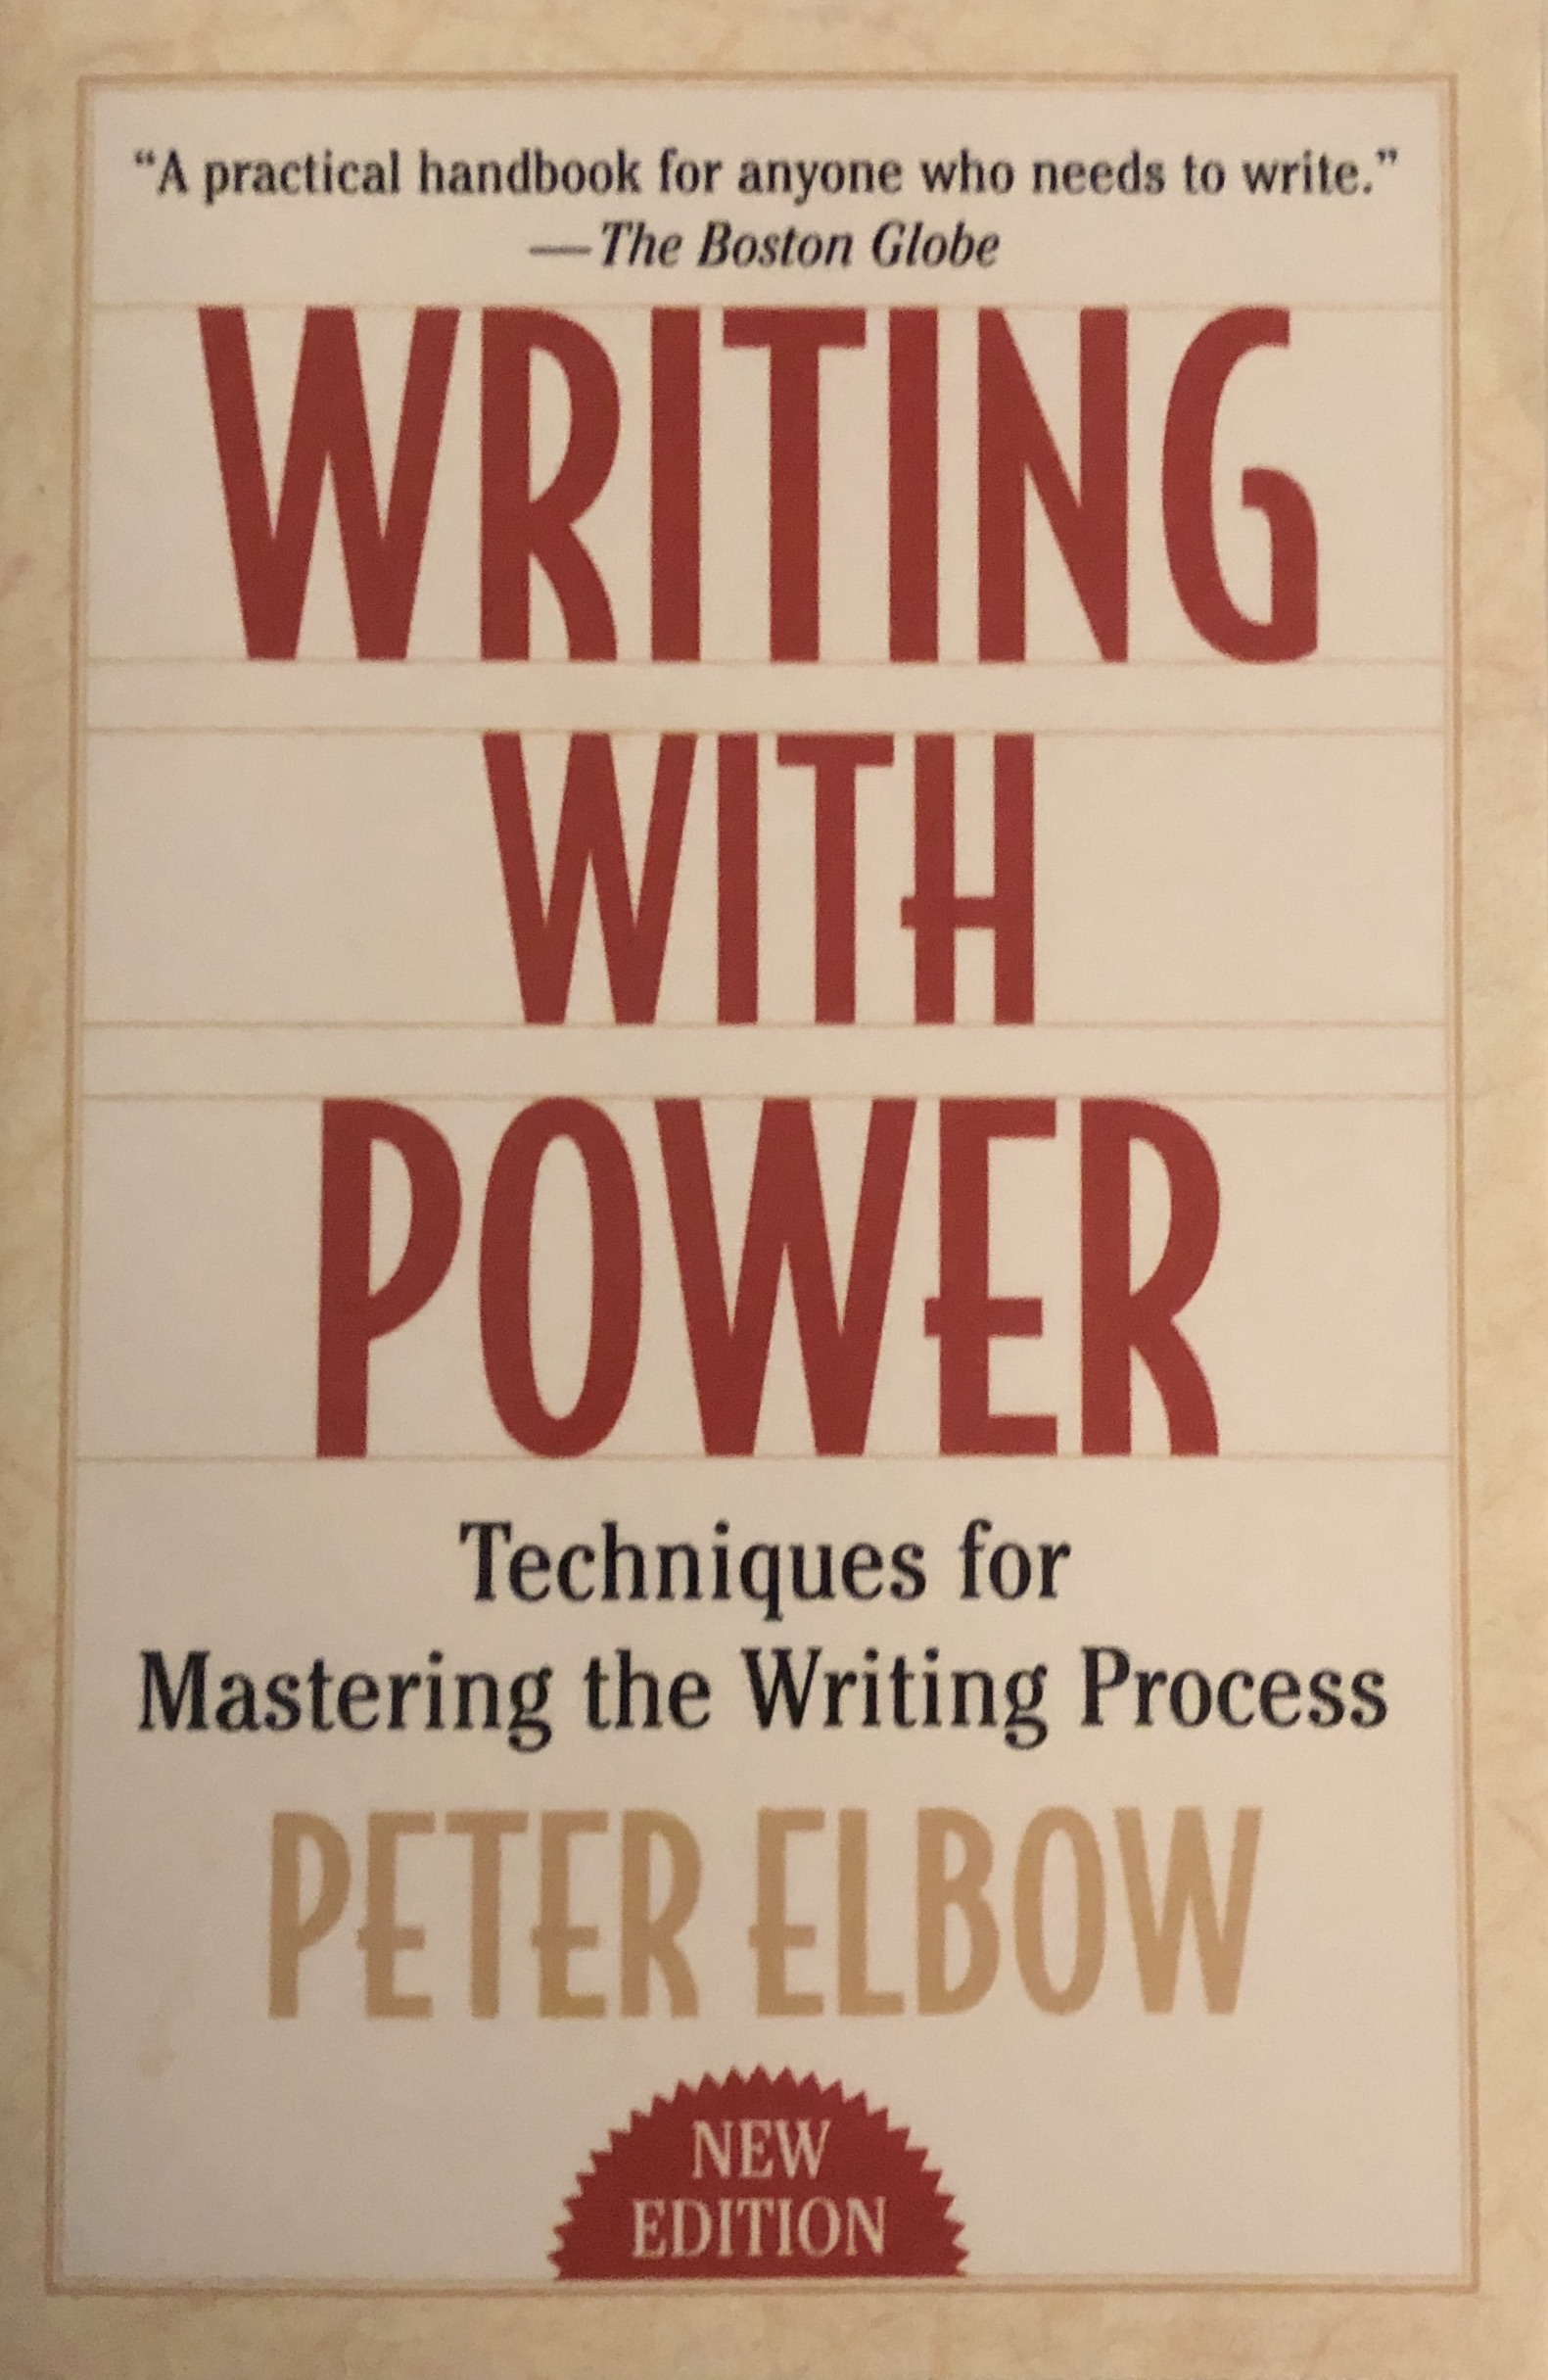 Writing with Power - Techniques for